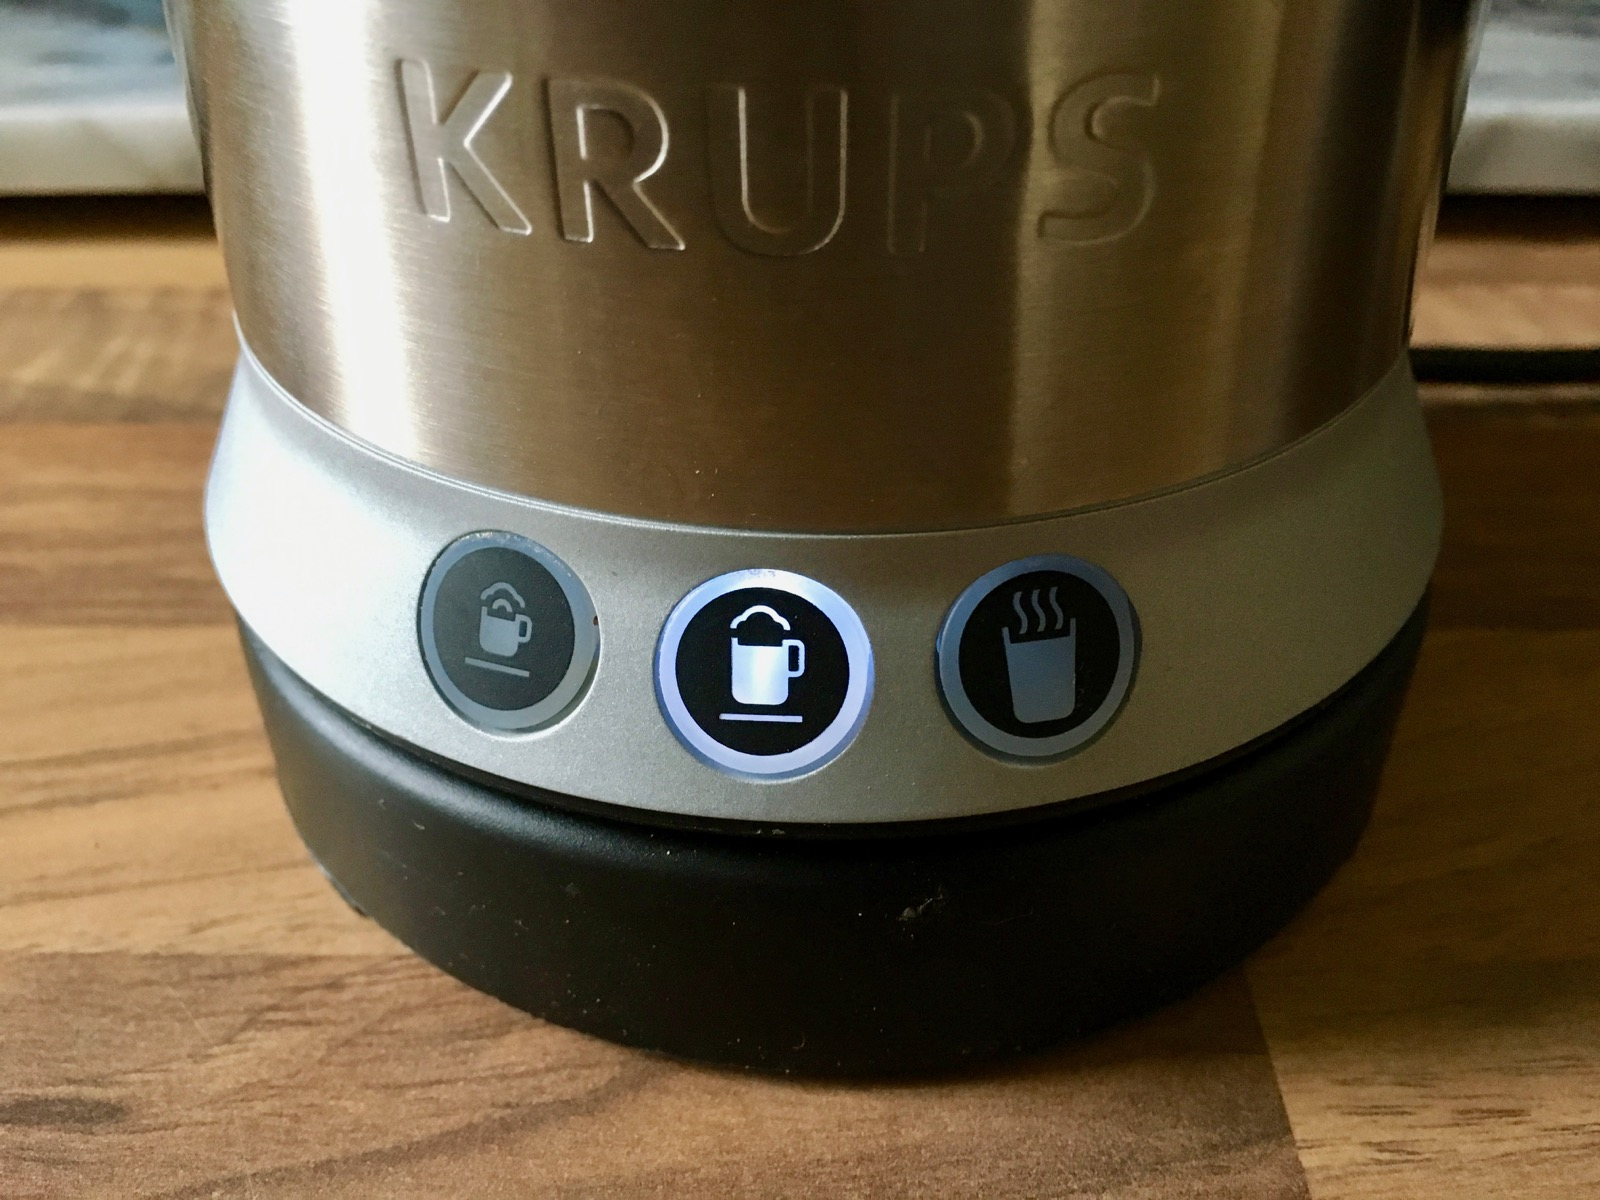 Close-up of buttons on the Krups Milk Frother